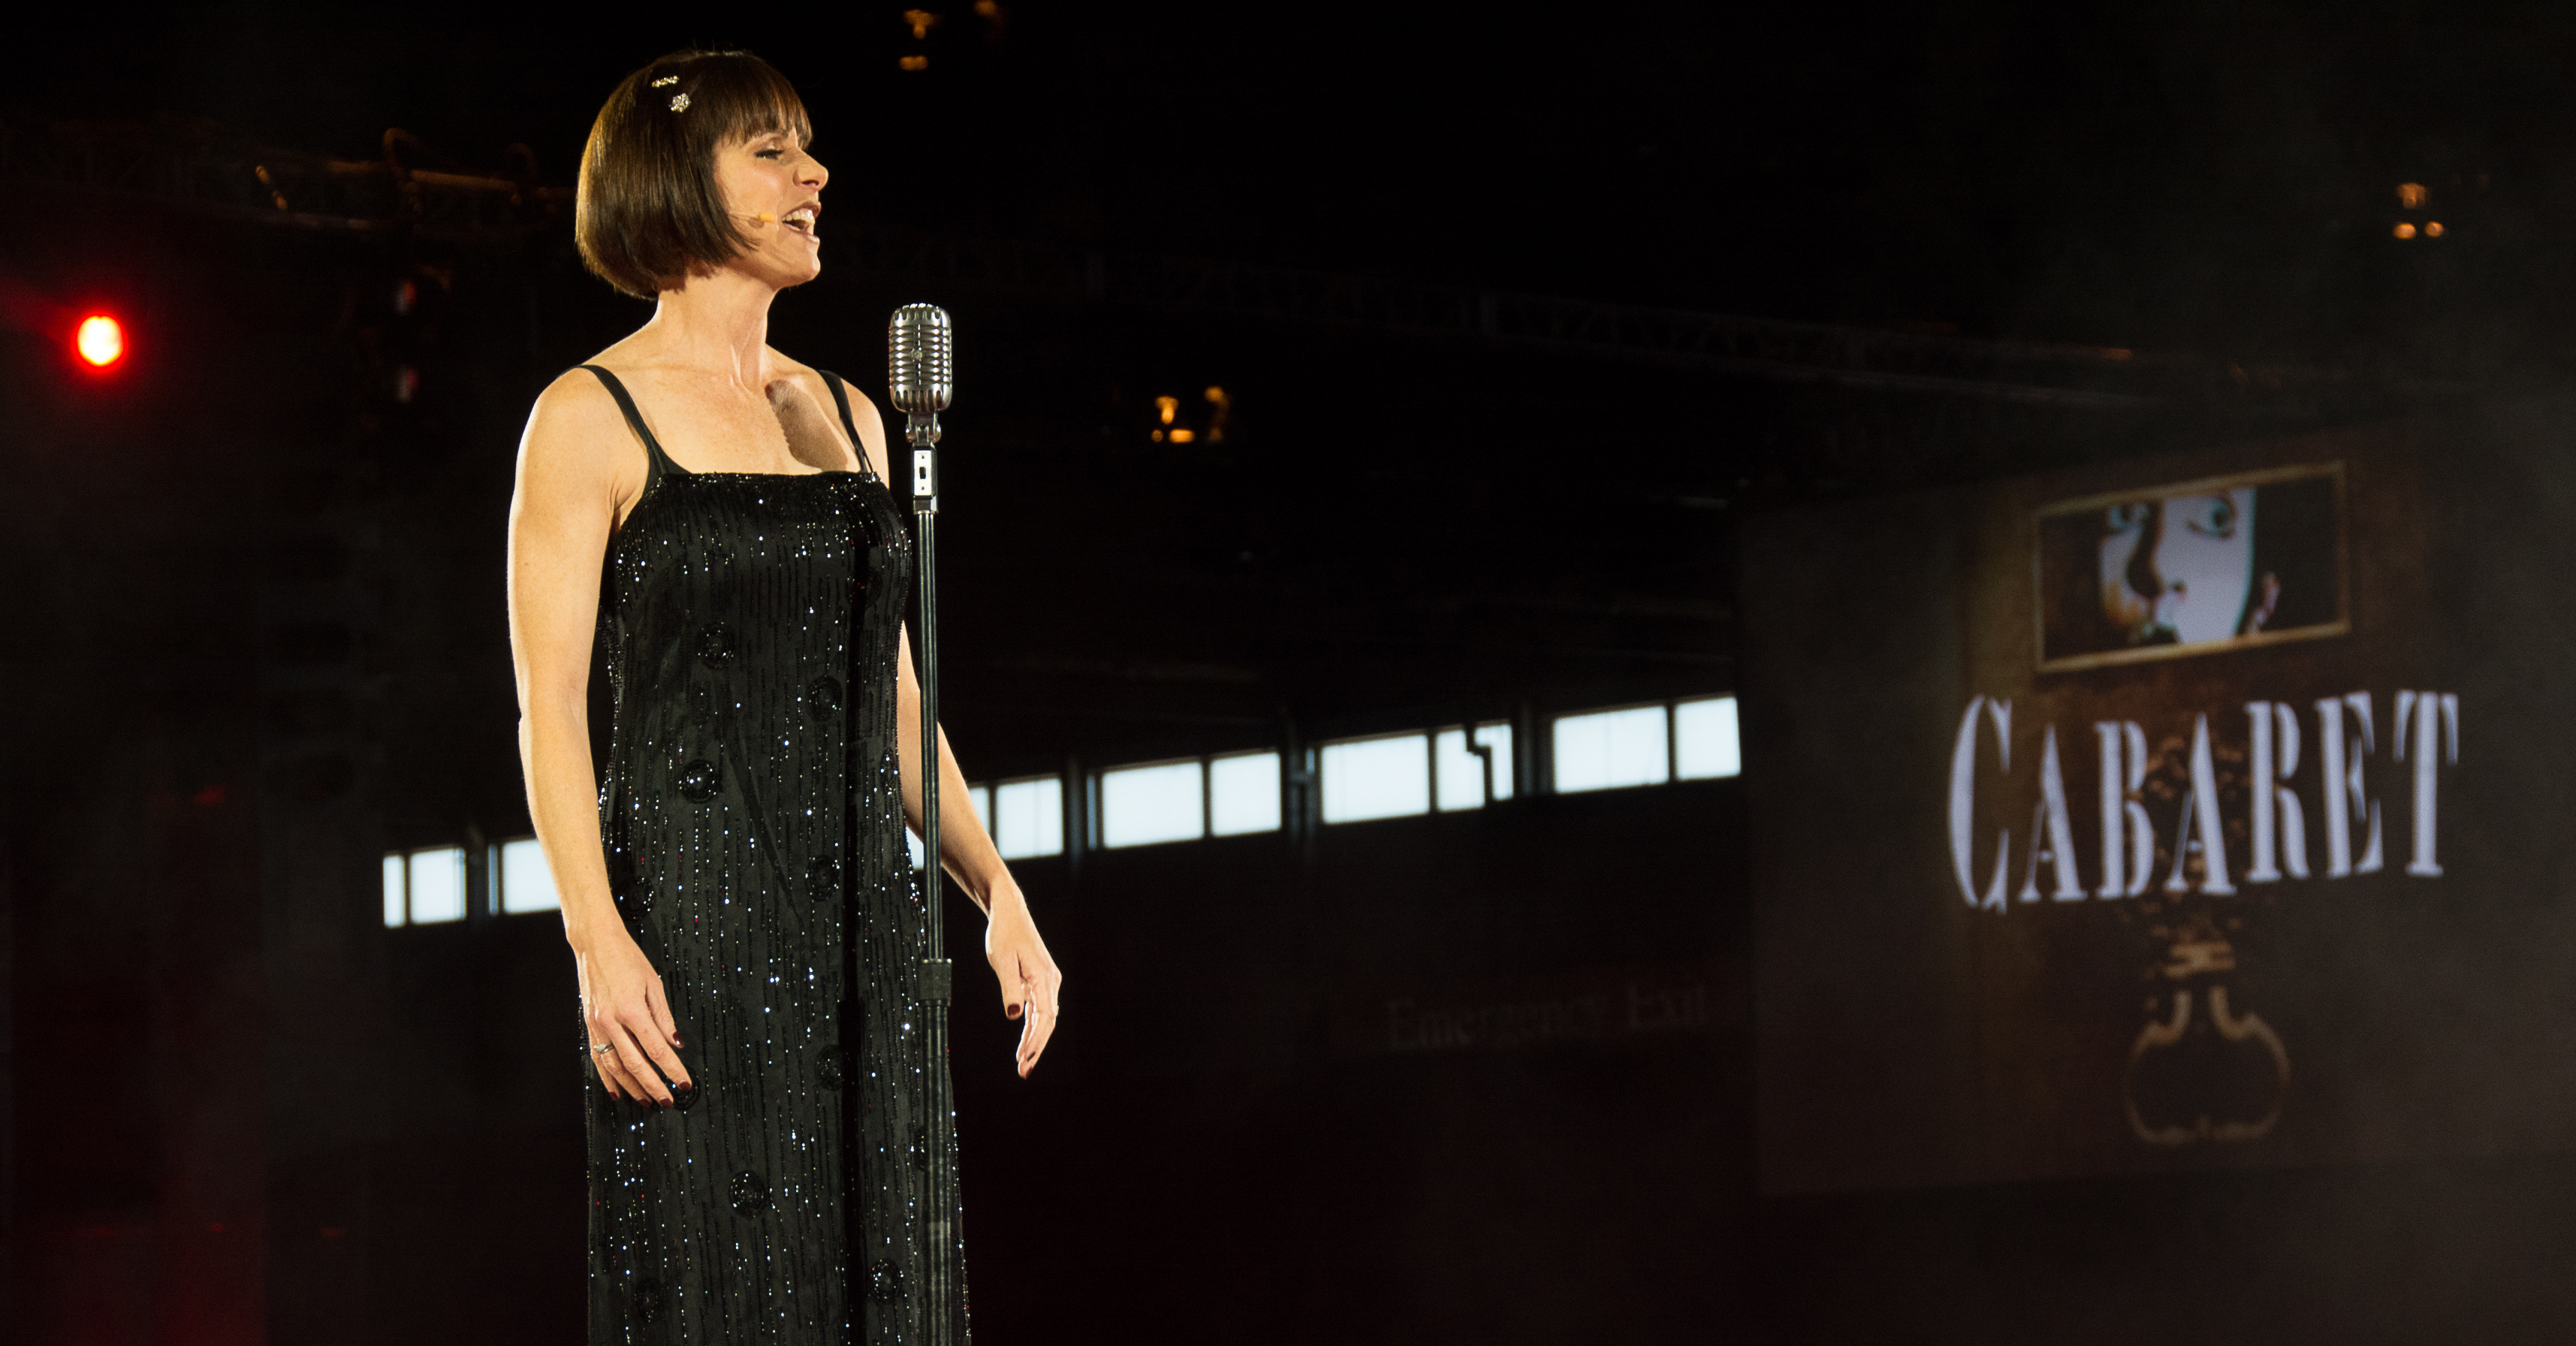 Broadway Songs: Cabaret Shows in NYC This Week